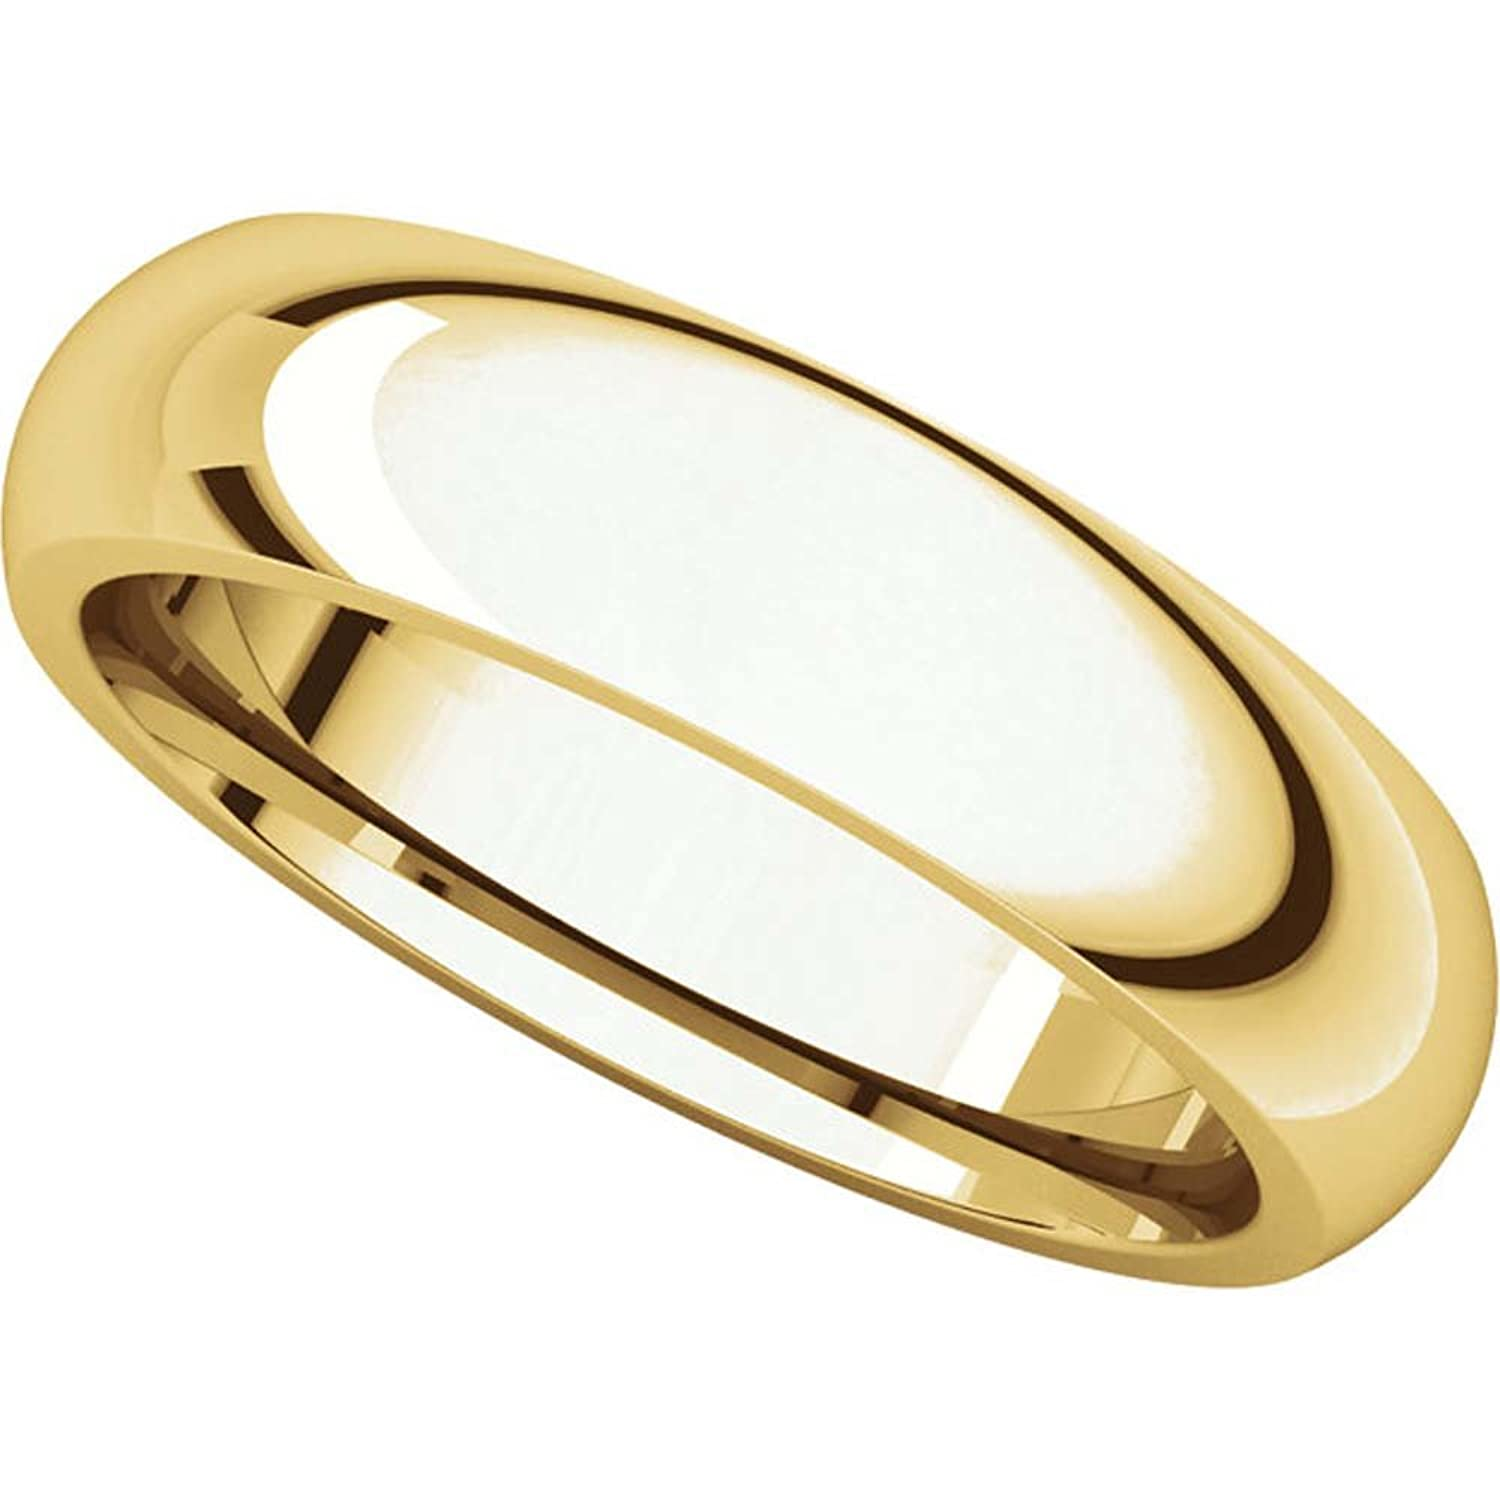 05.00 mm Comfort-Fit Wedding Band Ring in 24K Yellow Gold ( Size 10 )